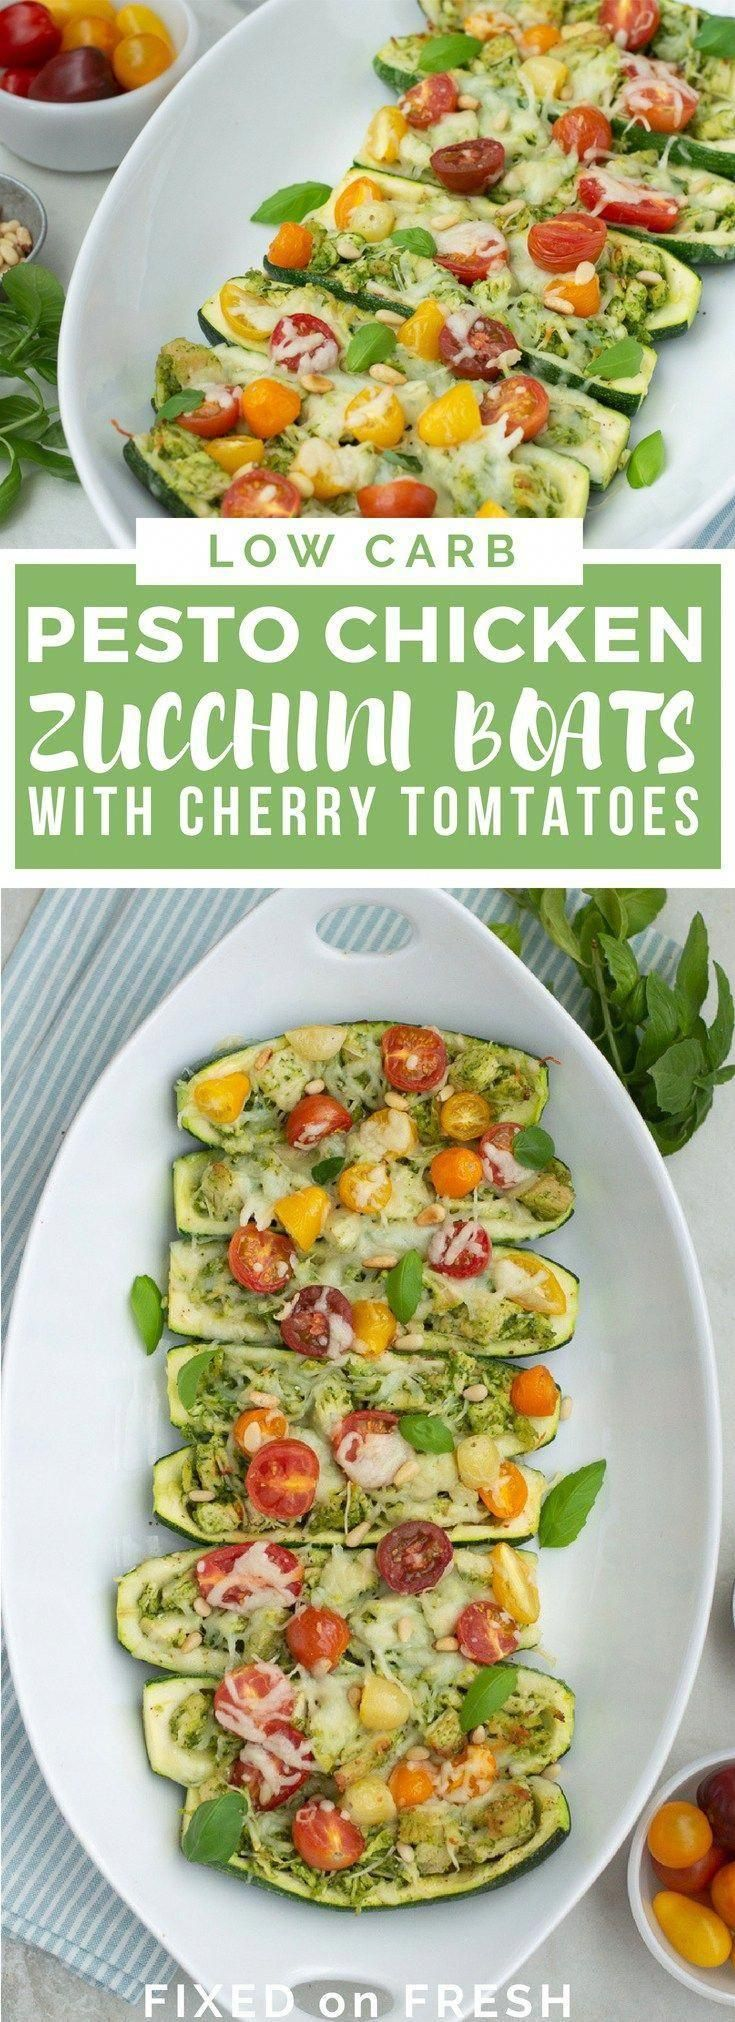 Low Carb Pesto Zucchini Boats with Cherry Tomatoes is an easy healthy dinner tha  low carb recipes